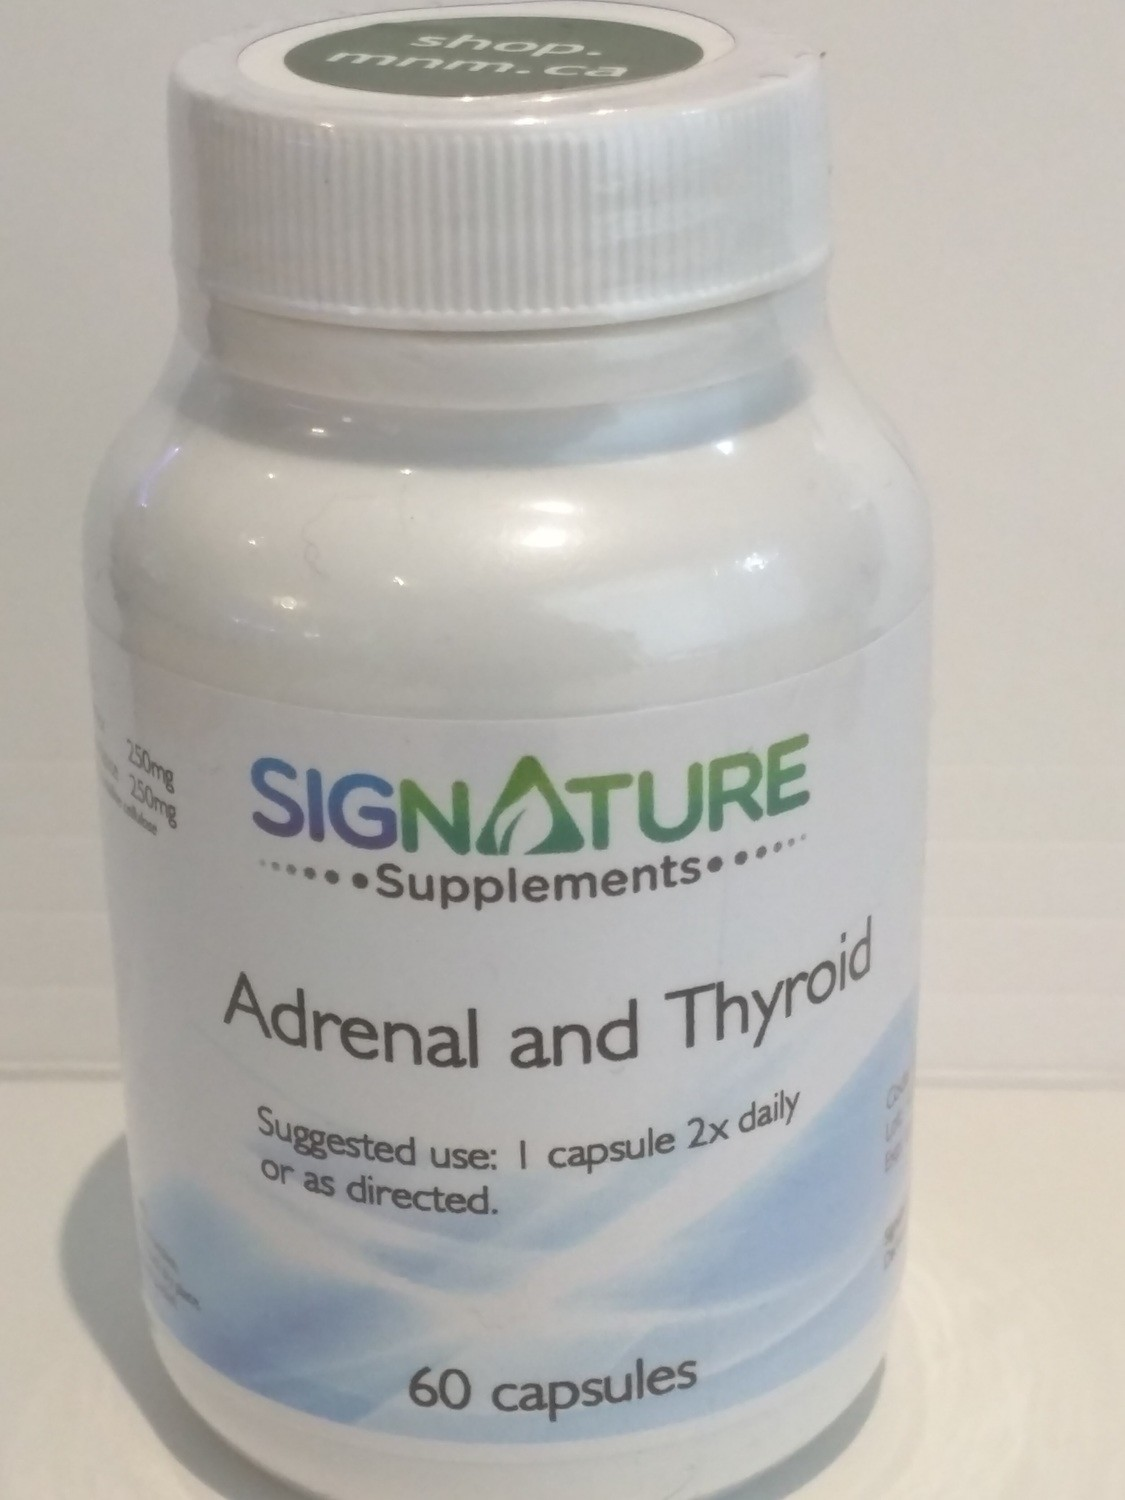 Adrenal and Thyroid (Prescription) by Signature Supplements